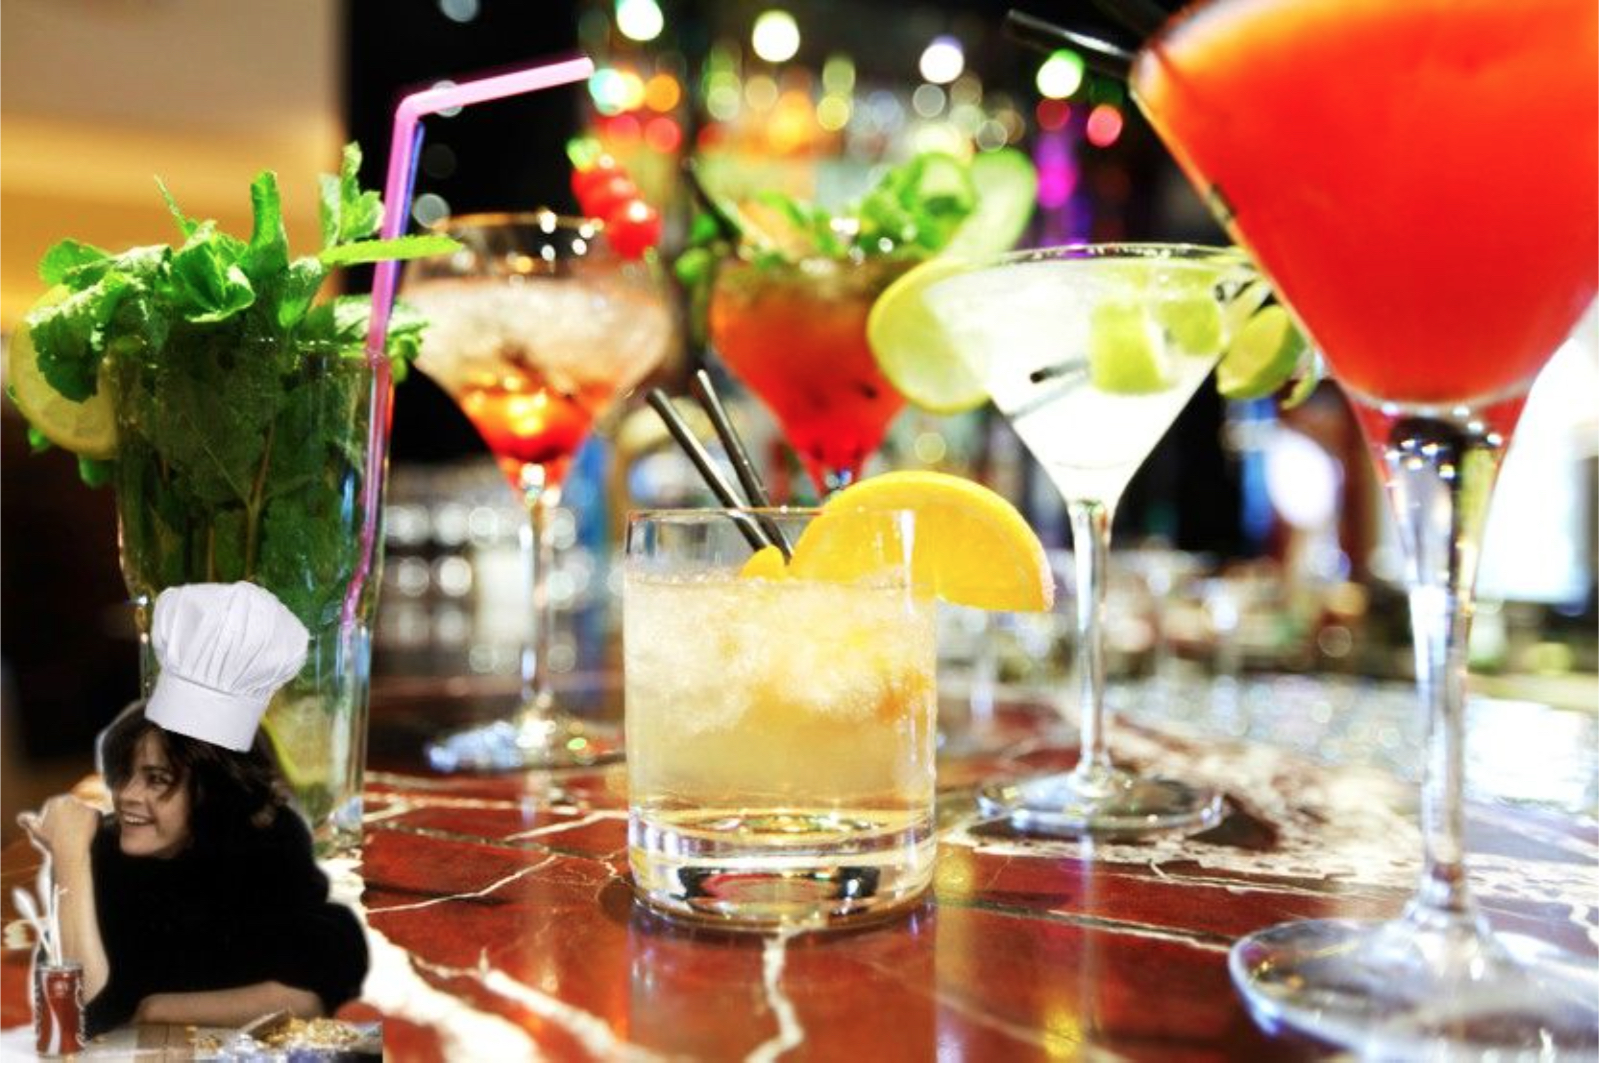 mixology-cooking-classes-chicago-vimbly